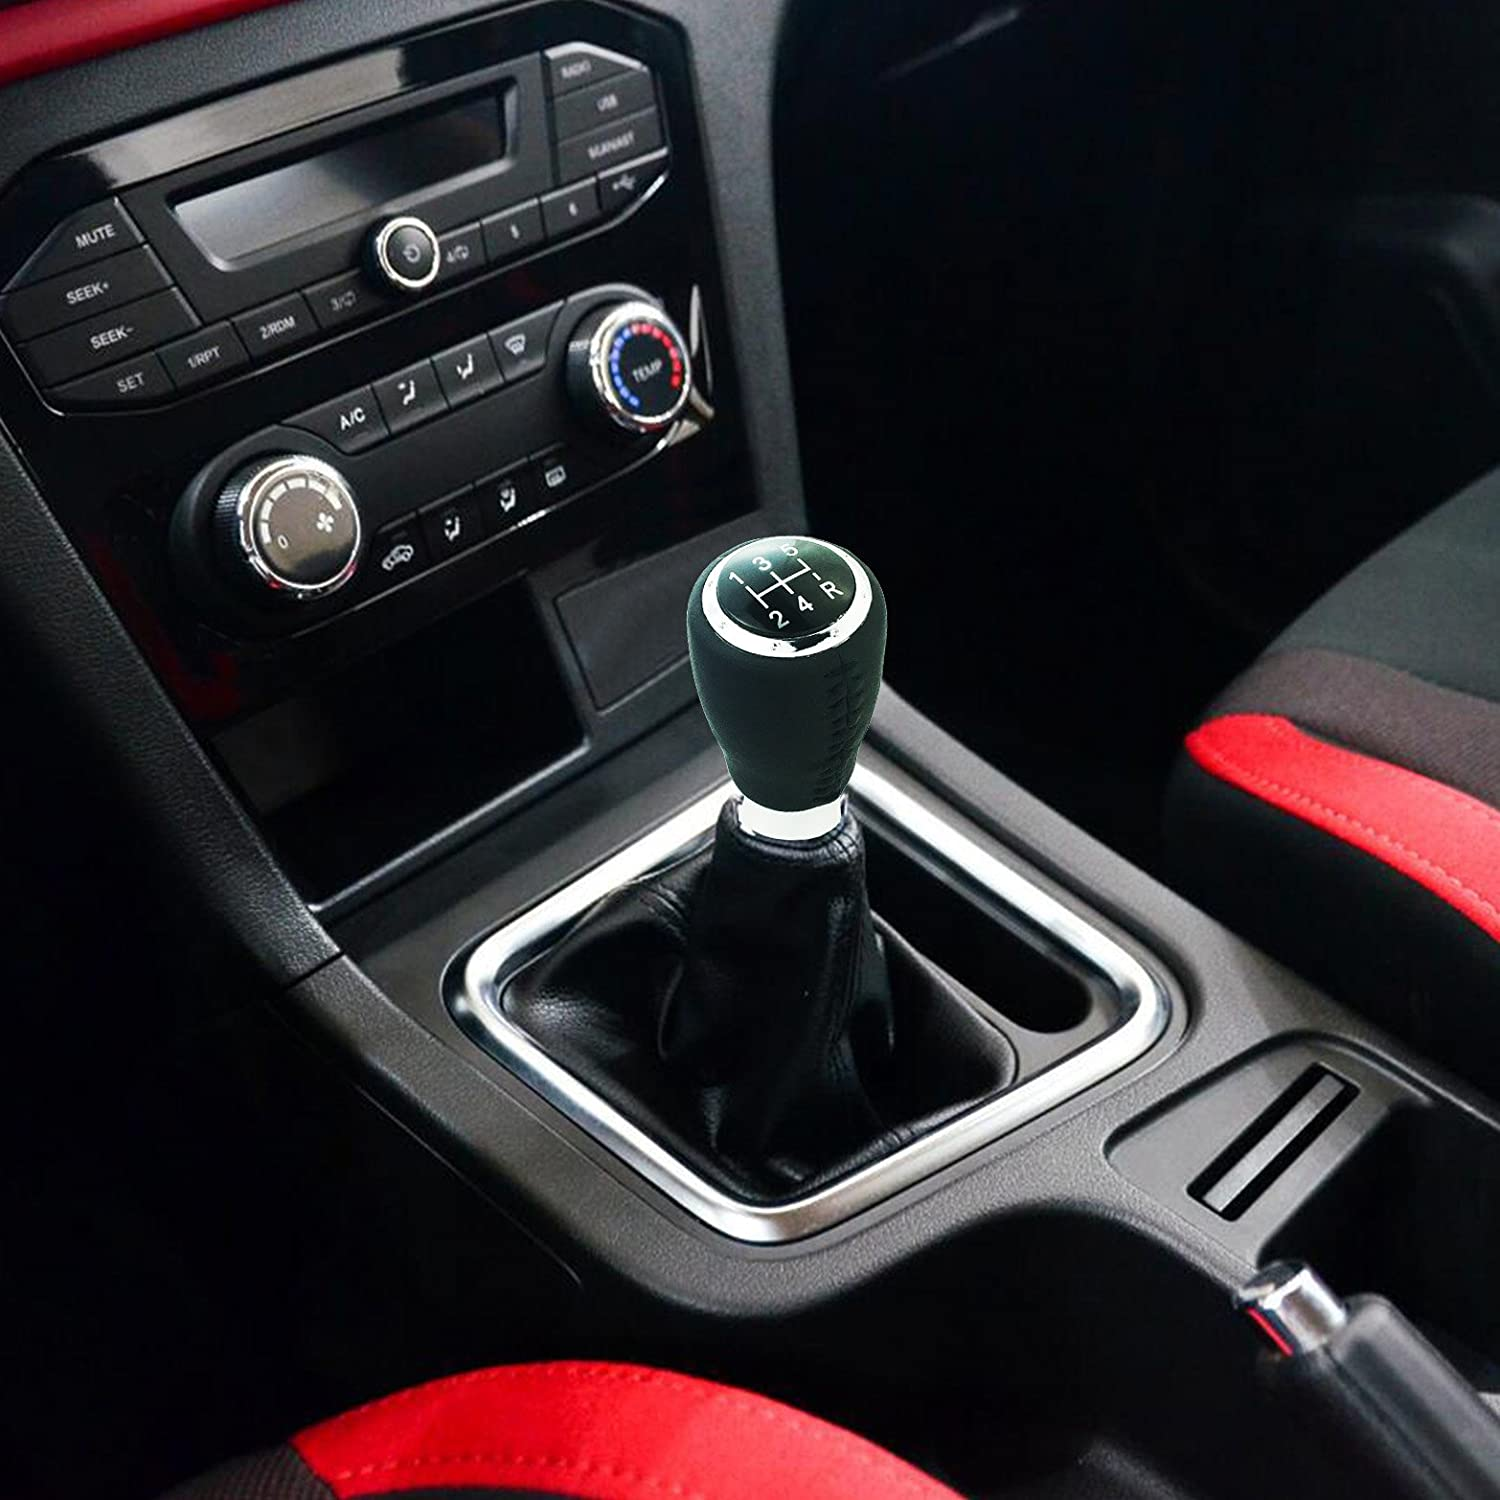 Black, Red Arenbel Leather Shifter Knob 5-Speed Gear Shifting Lever Head Car Stick Speed knobs fit Most Universal Manual Vehicle,